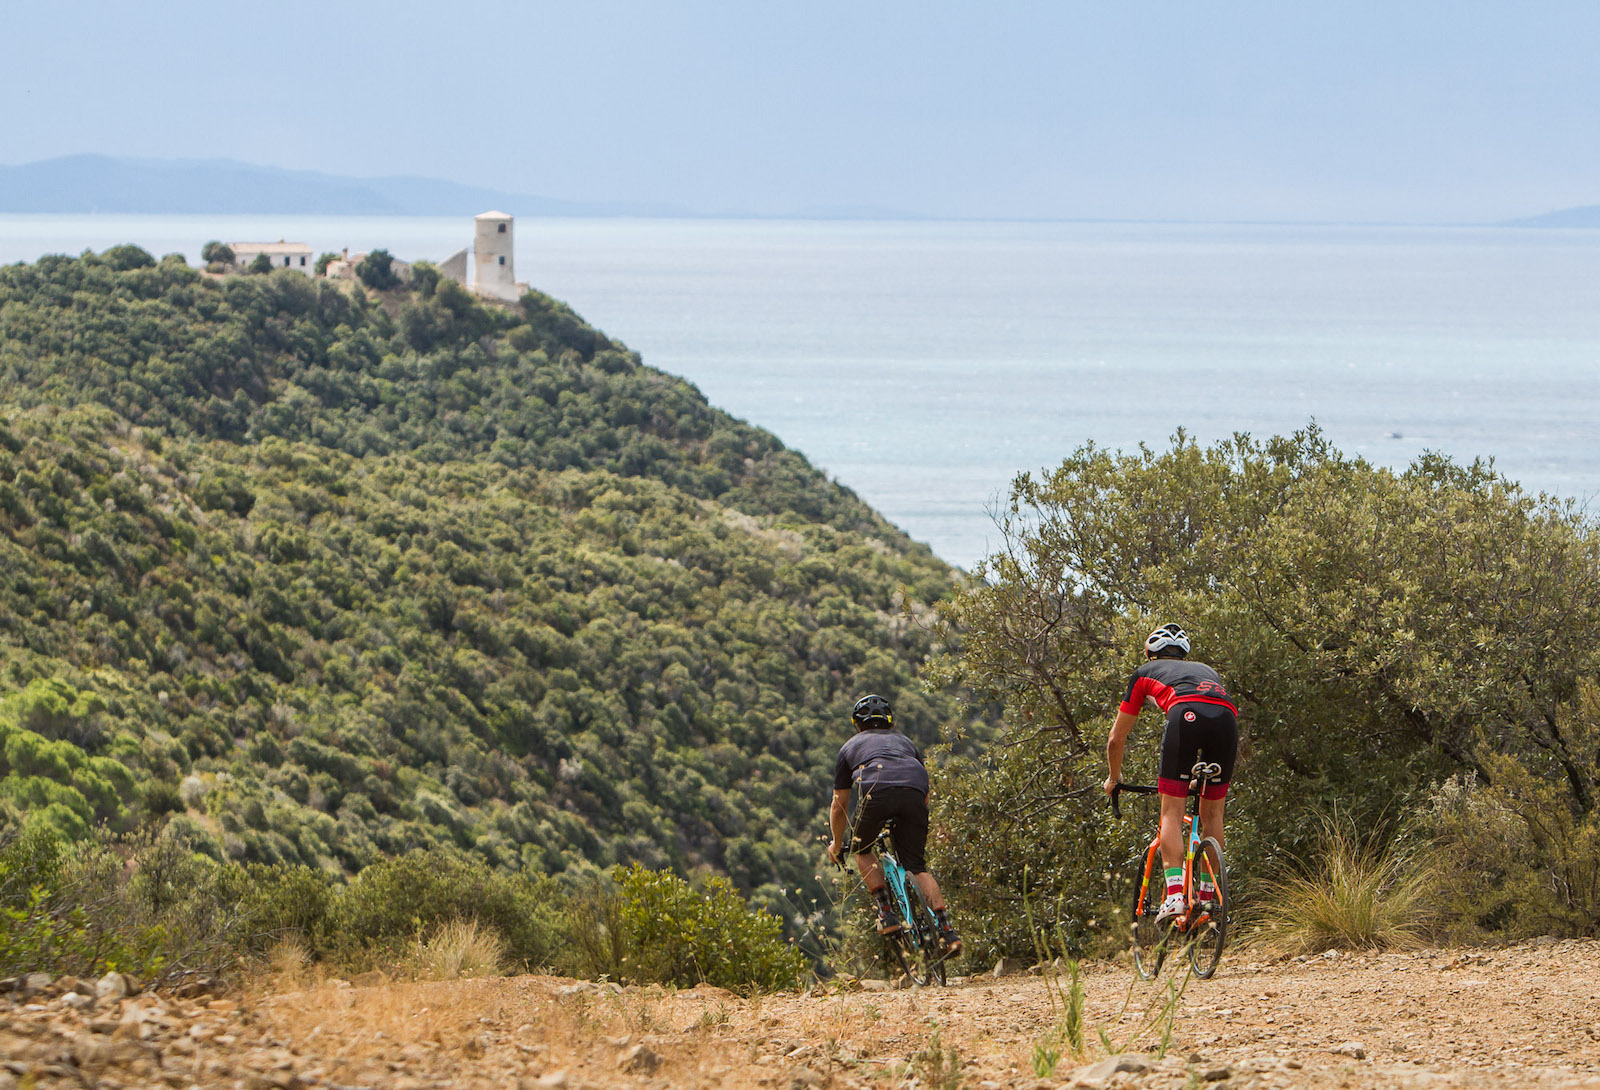 From coastline to countryside, the Gravel Road Challenge route takes in the best of Tuscany.